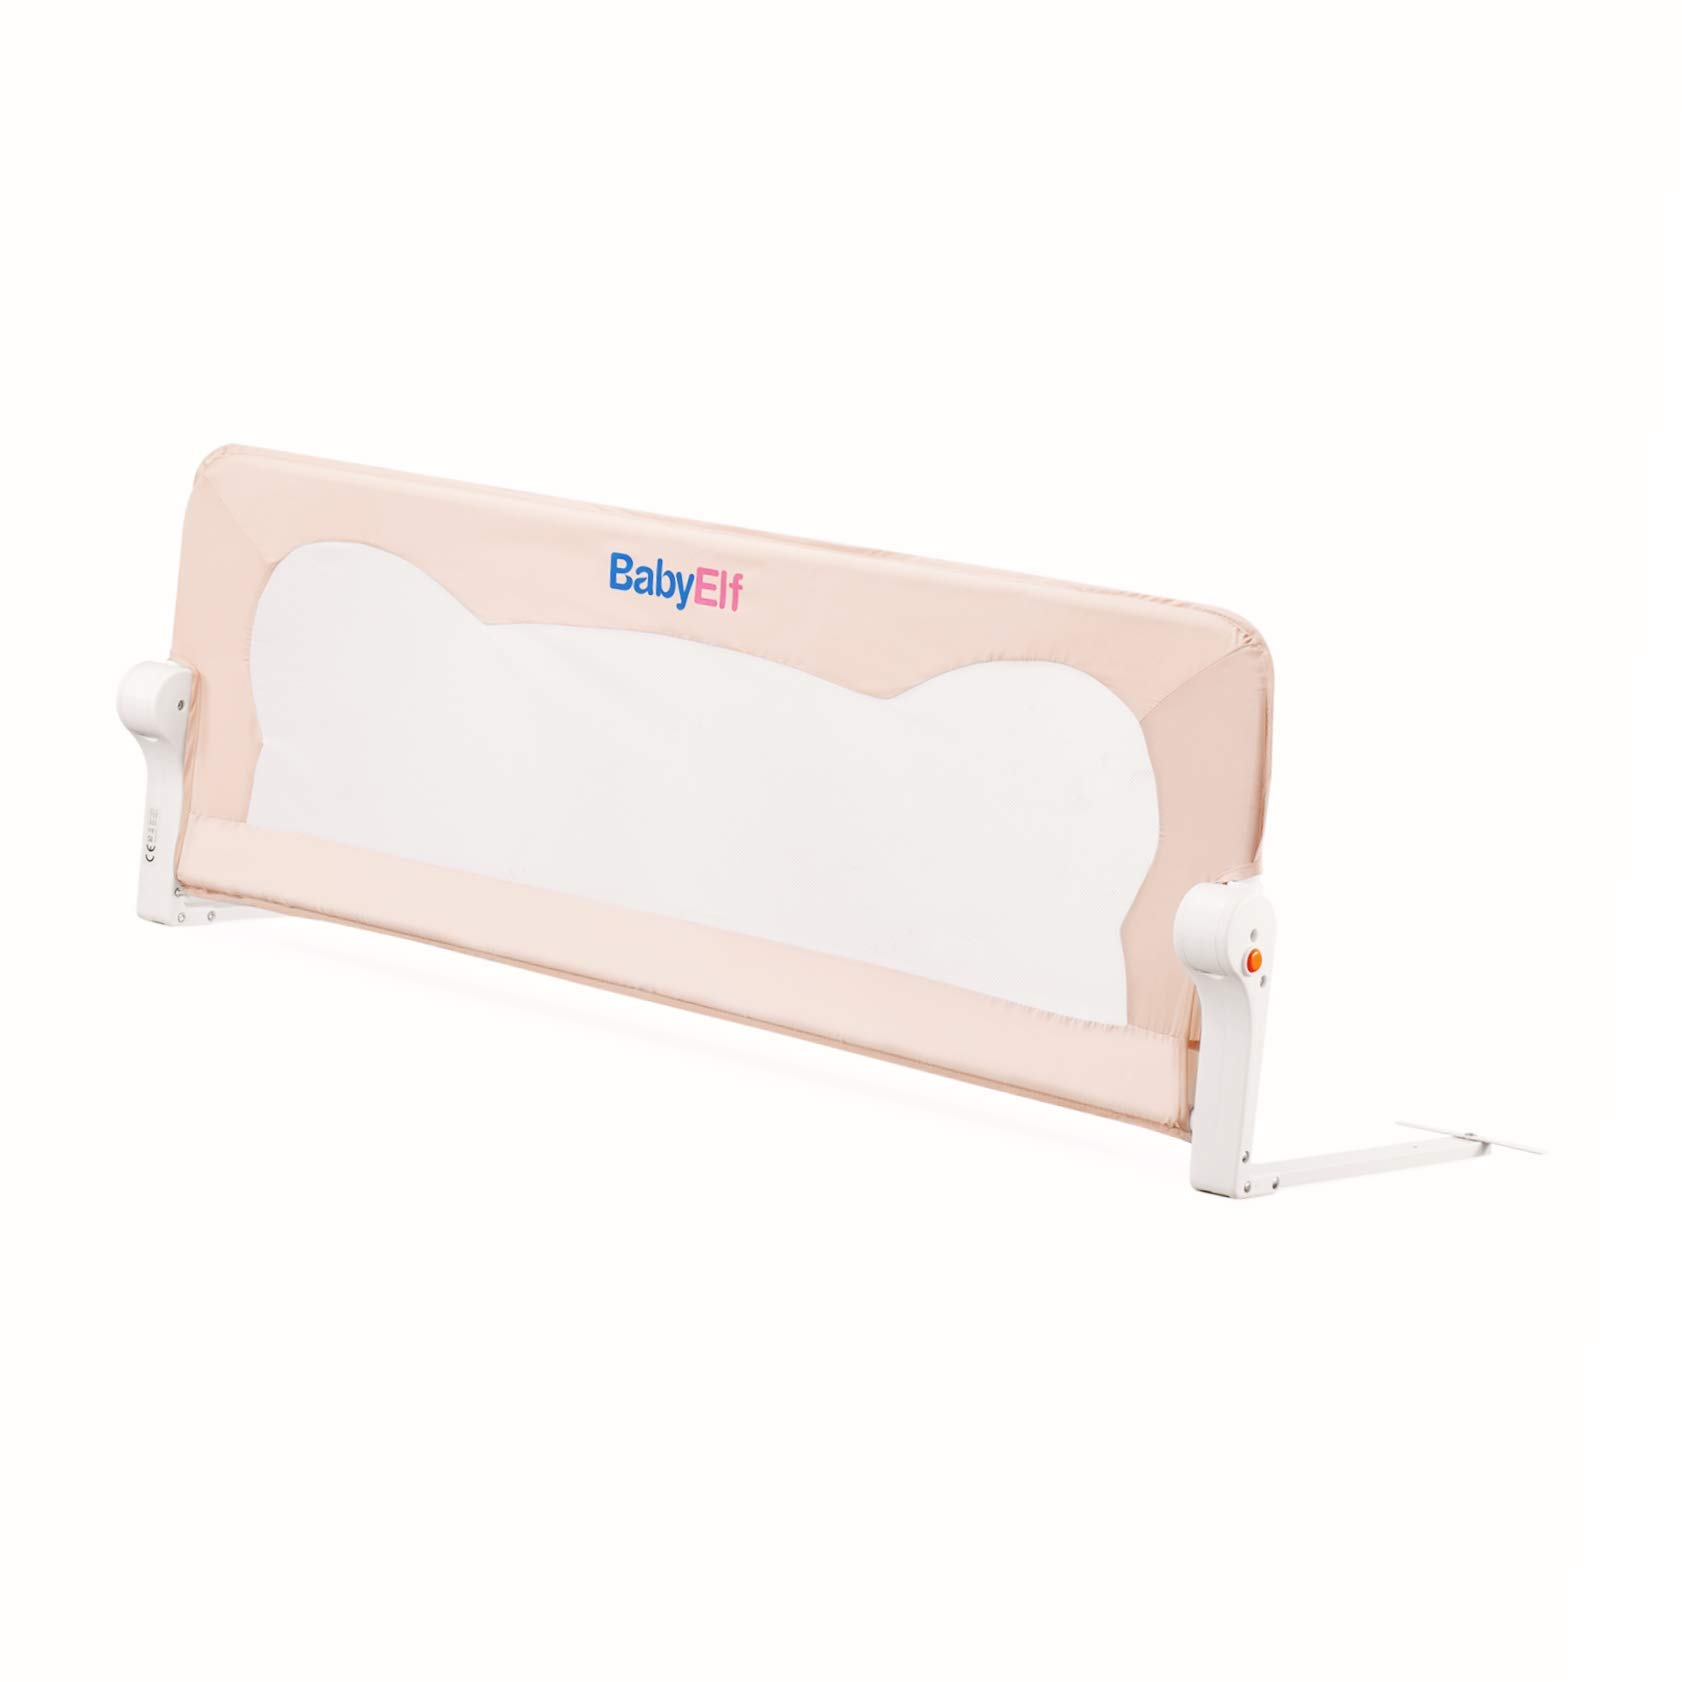 BABY ELF Bed Rail - Mesh Bed Rail for Toddlers - Single Fold Safety Bedrail - Queen Size Bed Guard for Kids - Beige Color - Easy to Use - for The Baby's Safe Sleep (47 inch Shipped from US)